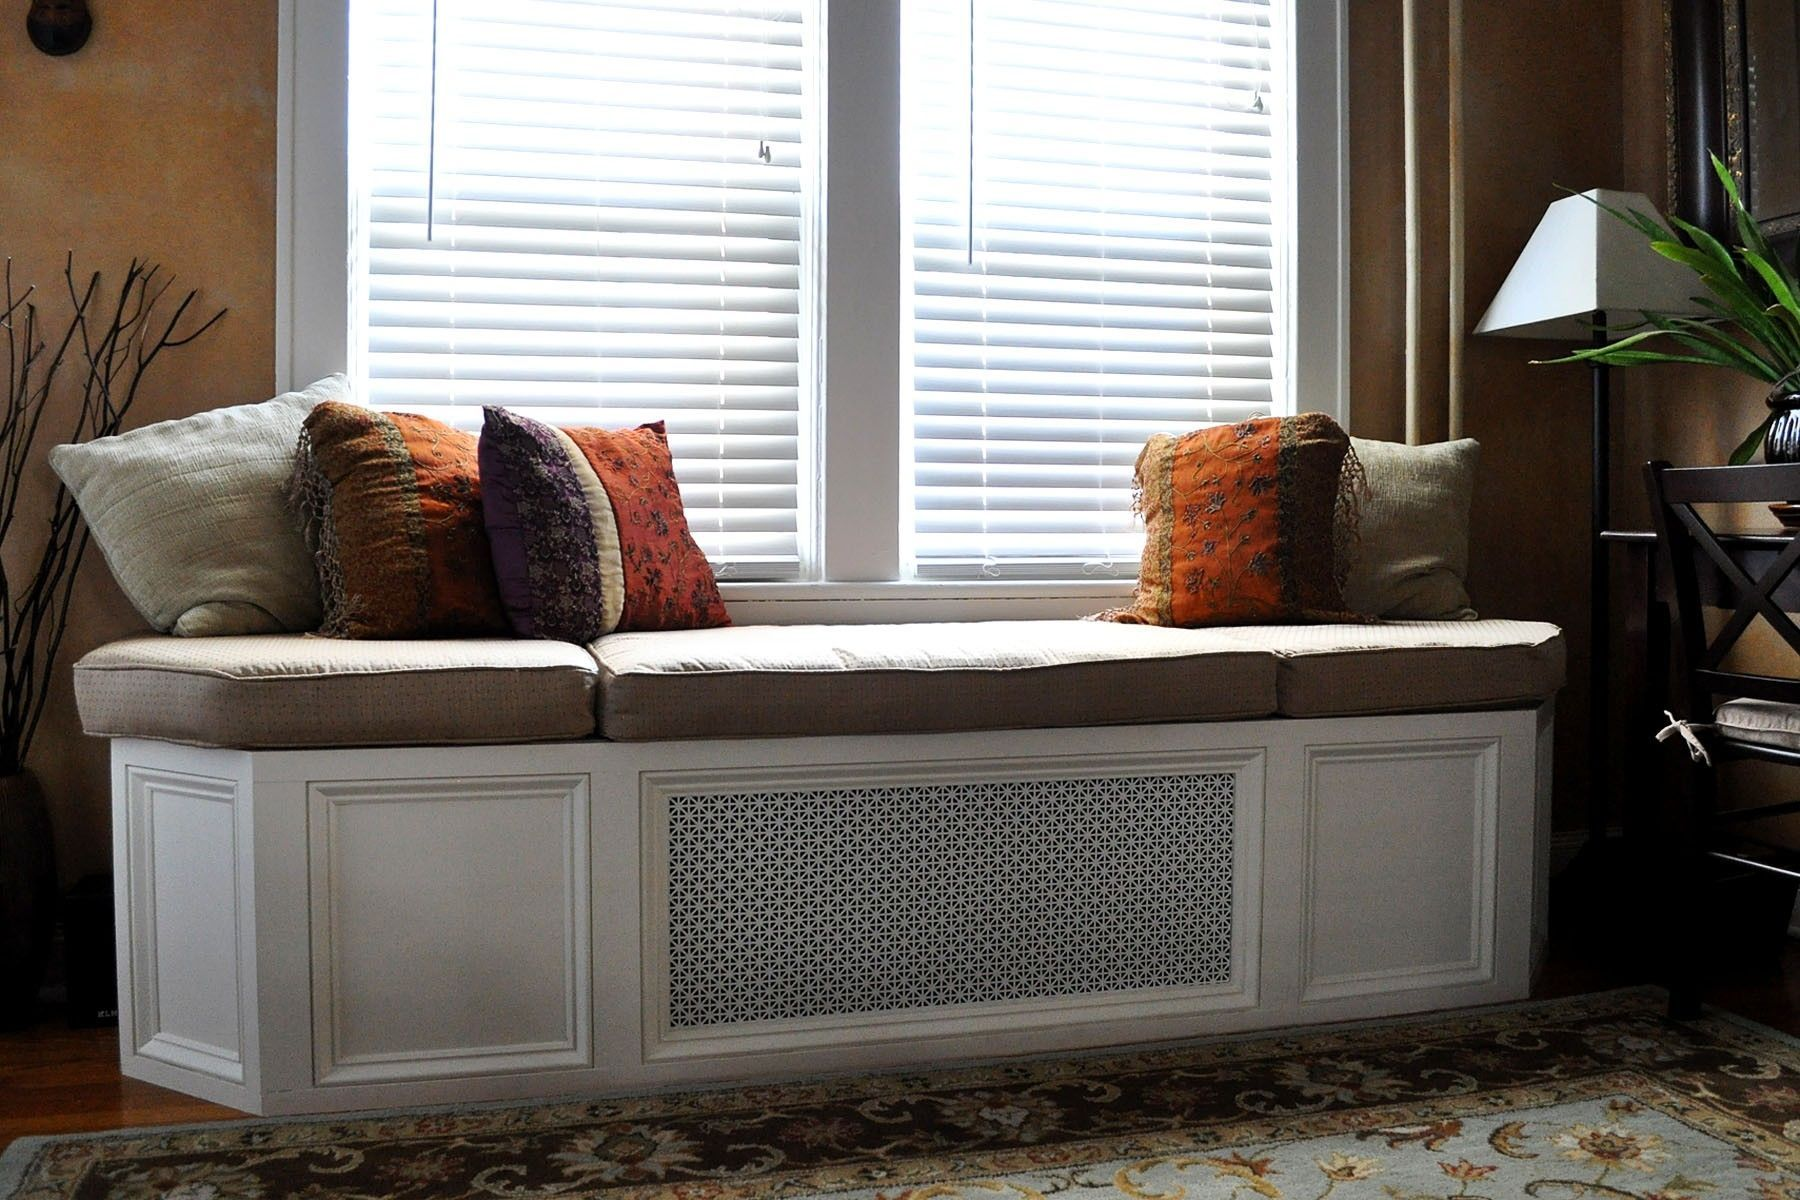 Bedroom Window Bench diy wooden window bench seat with storage, here is a great do it